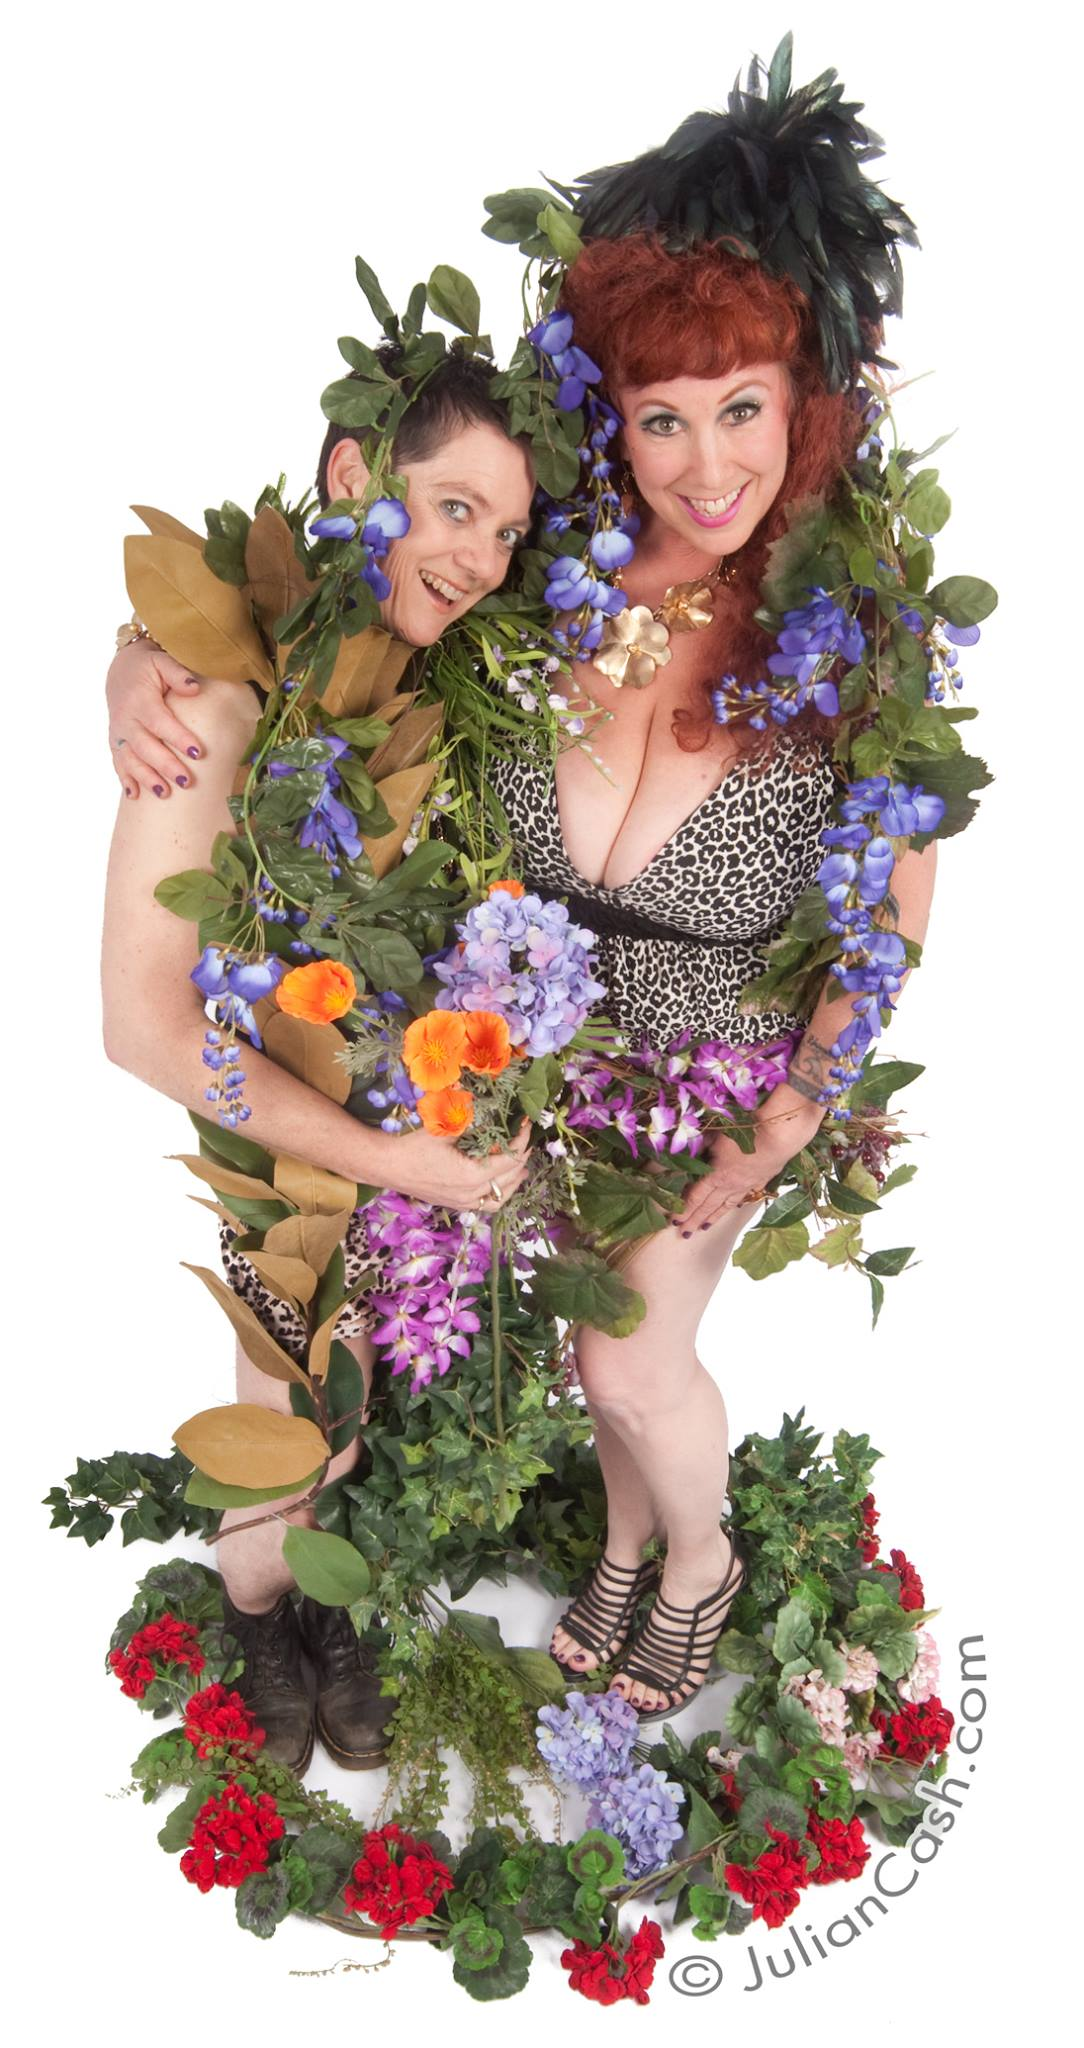 Ecosex Walking Tour with Annie Sprinkle & Beth Stephens